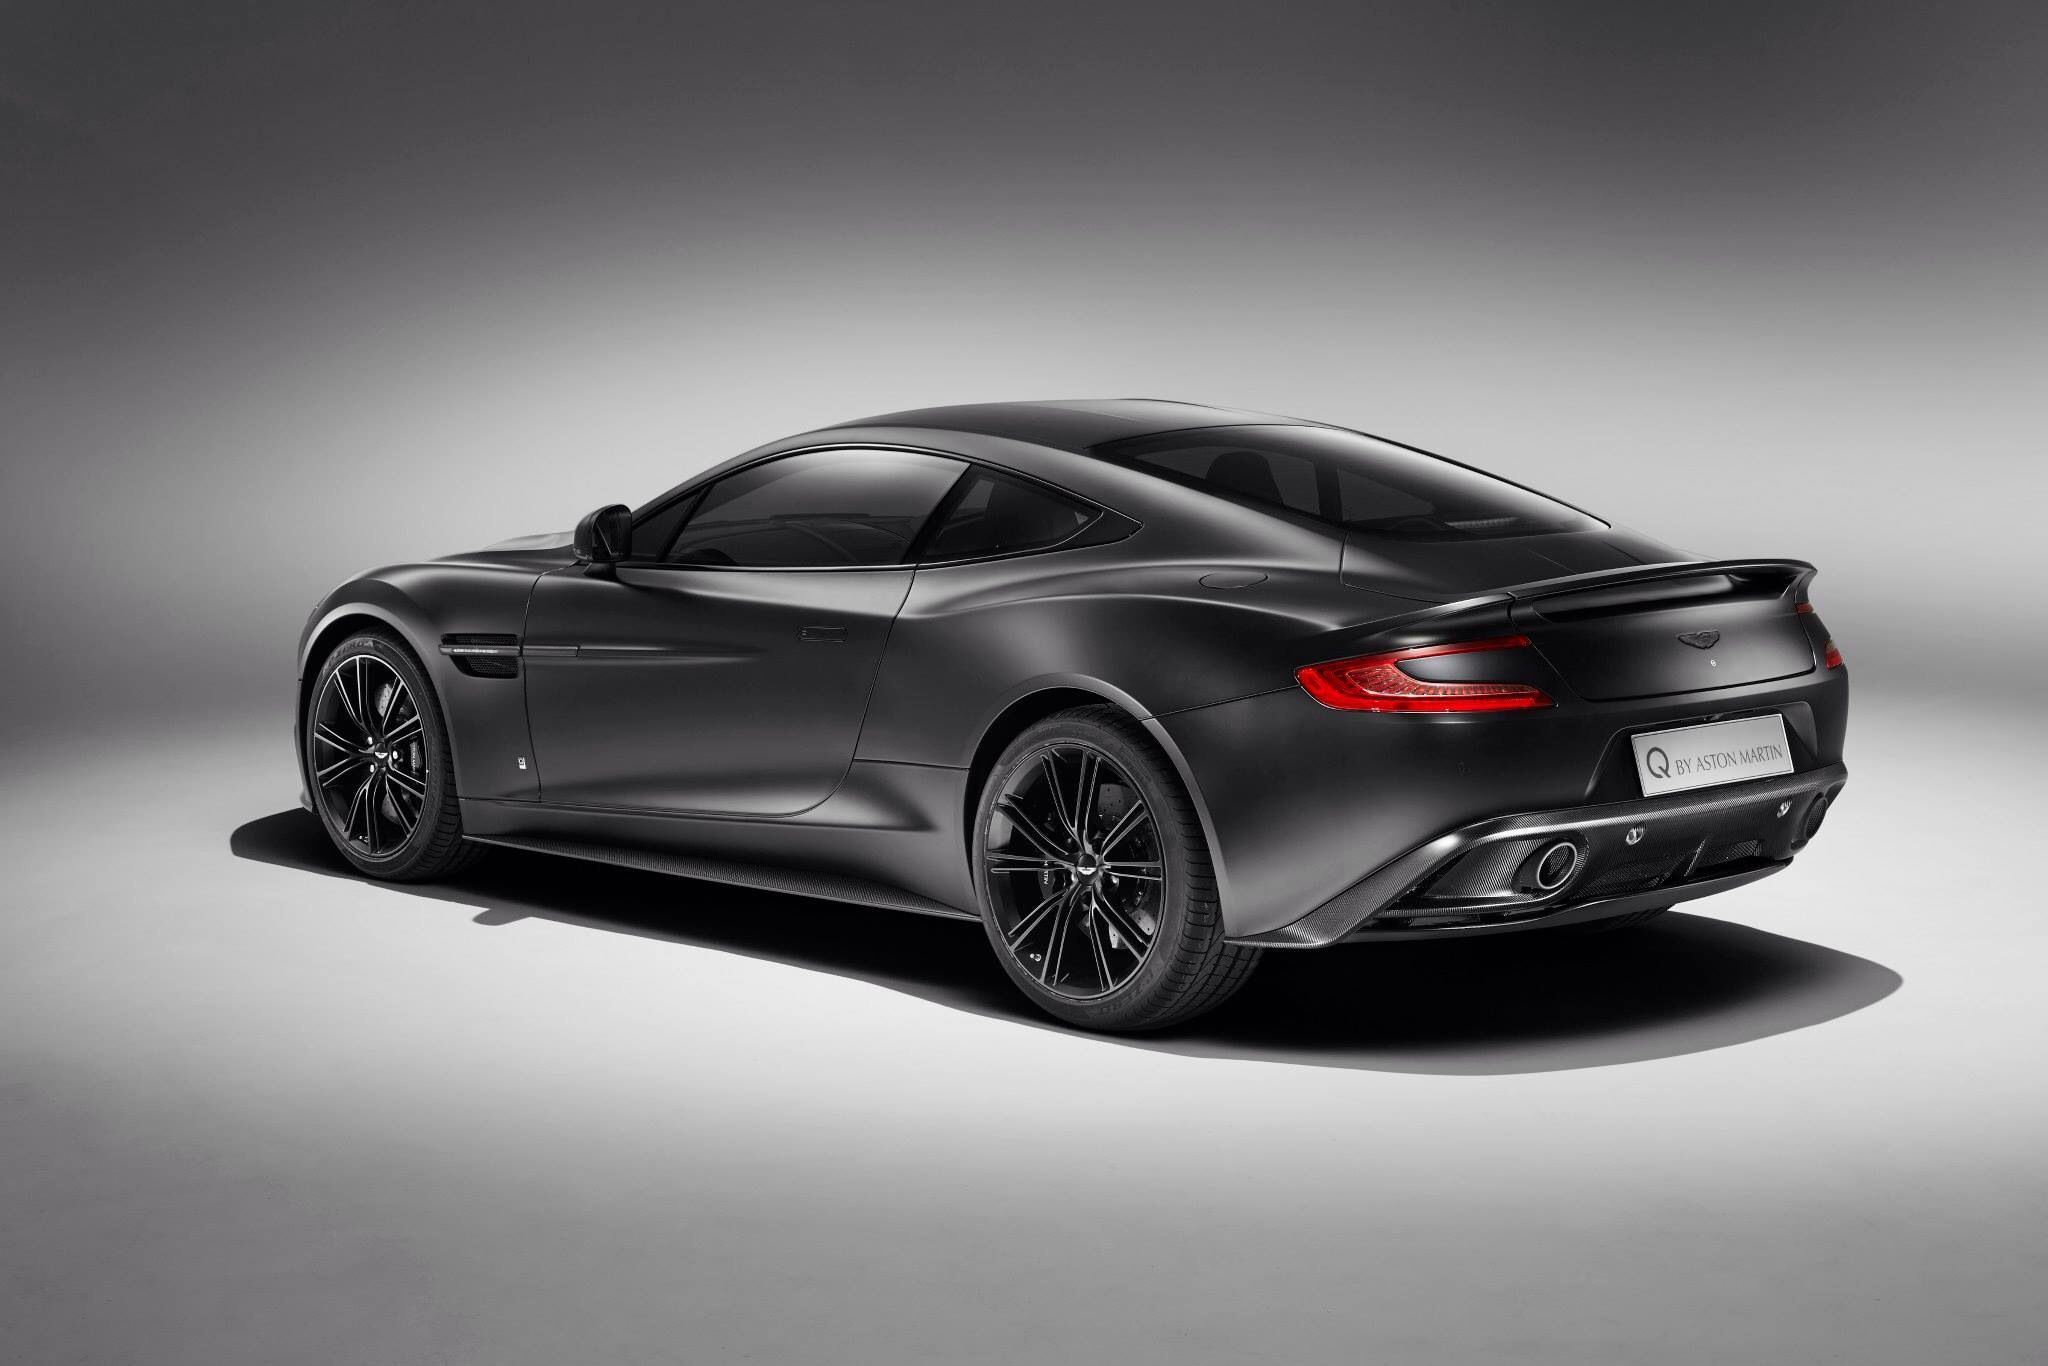 Am Vanquish Satin Jet Black Favourite Modes Of Transport